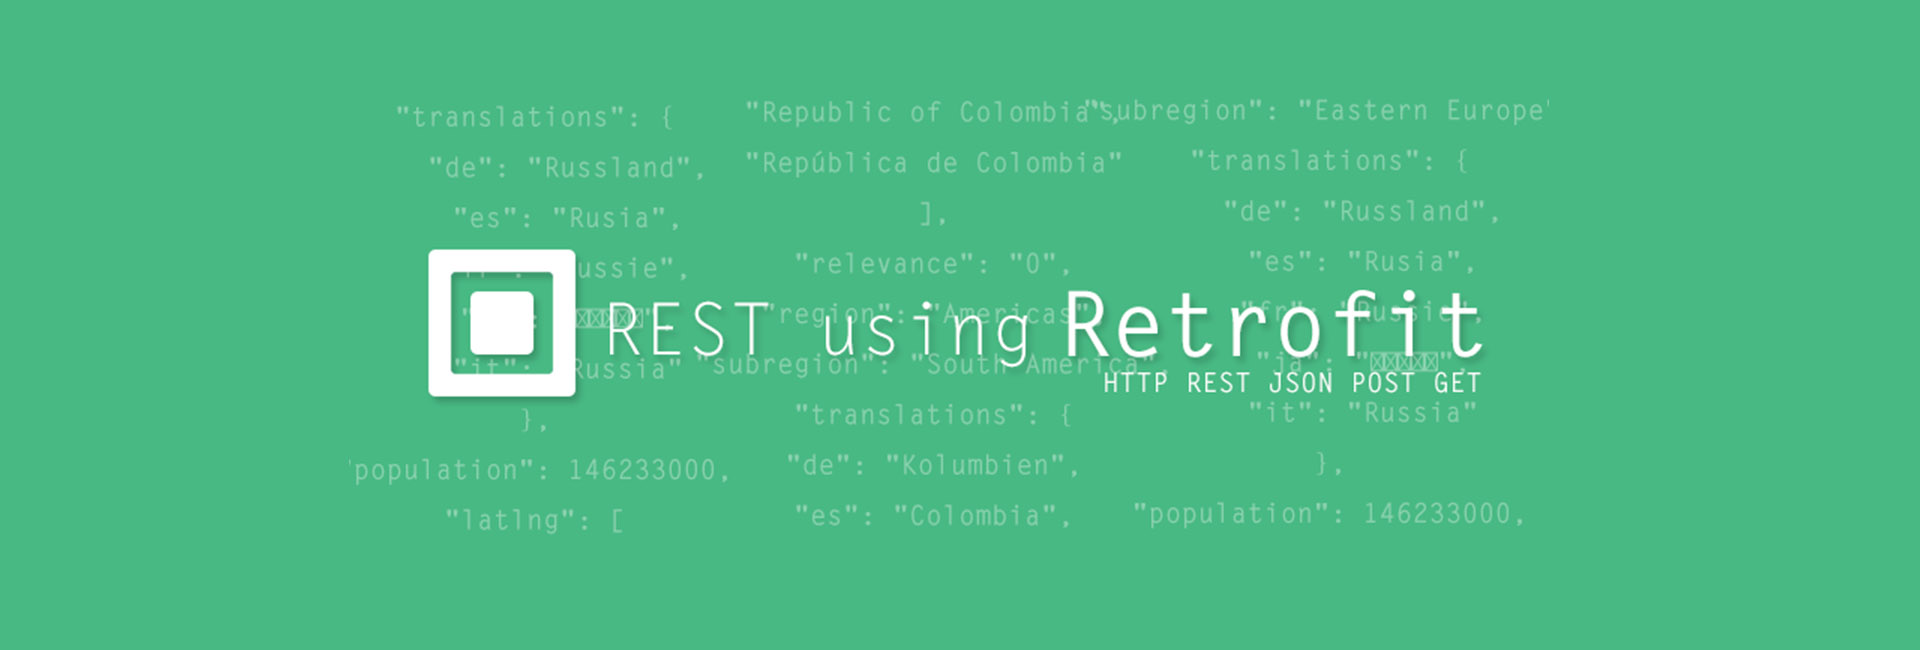 Retrofit networking library for Android